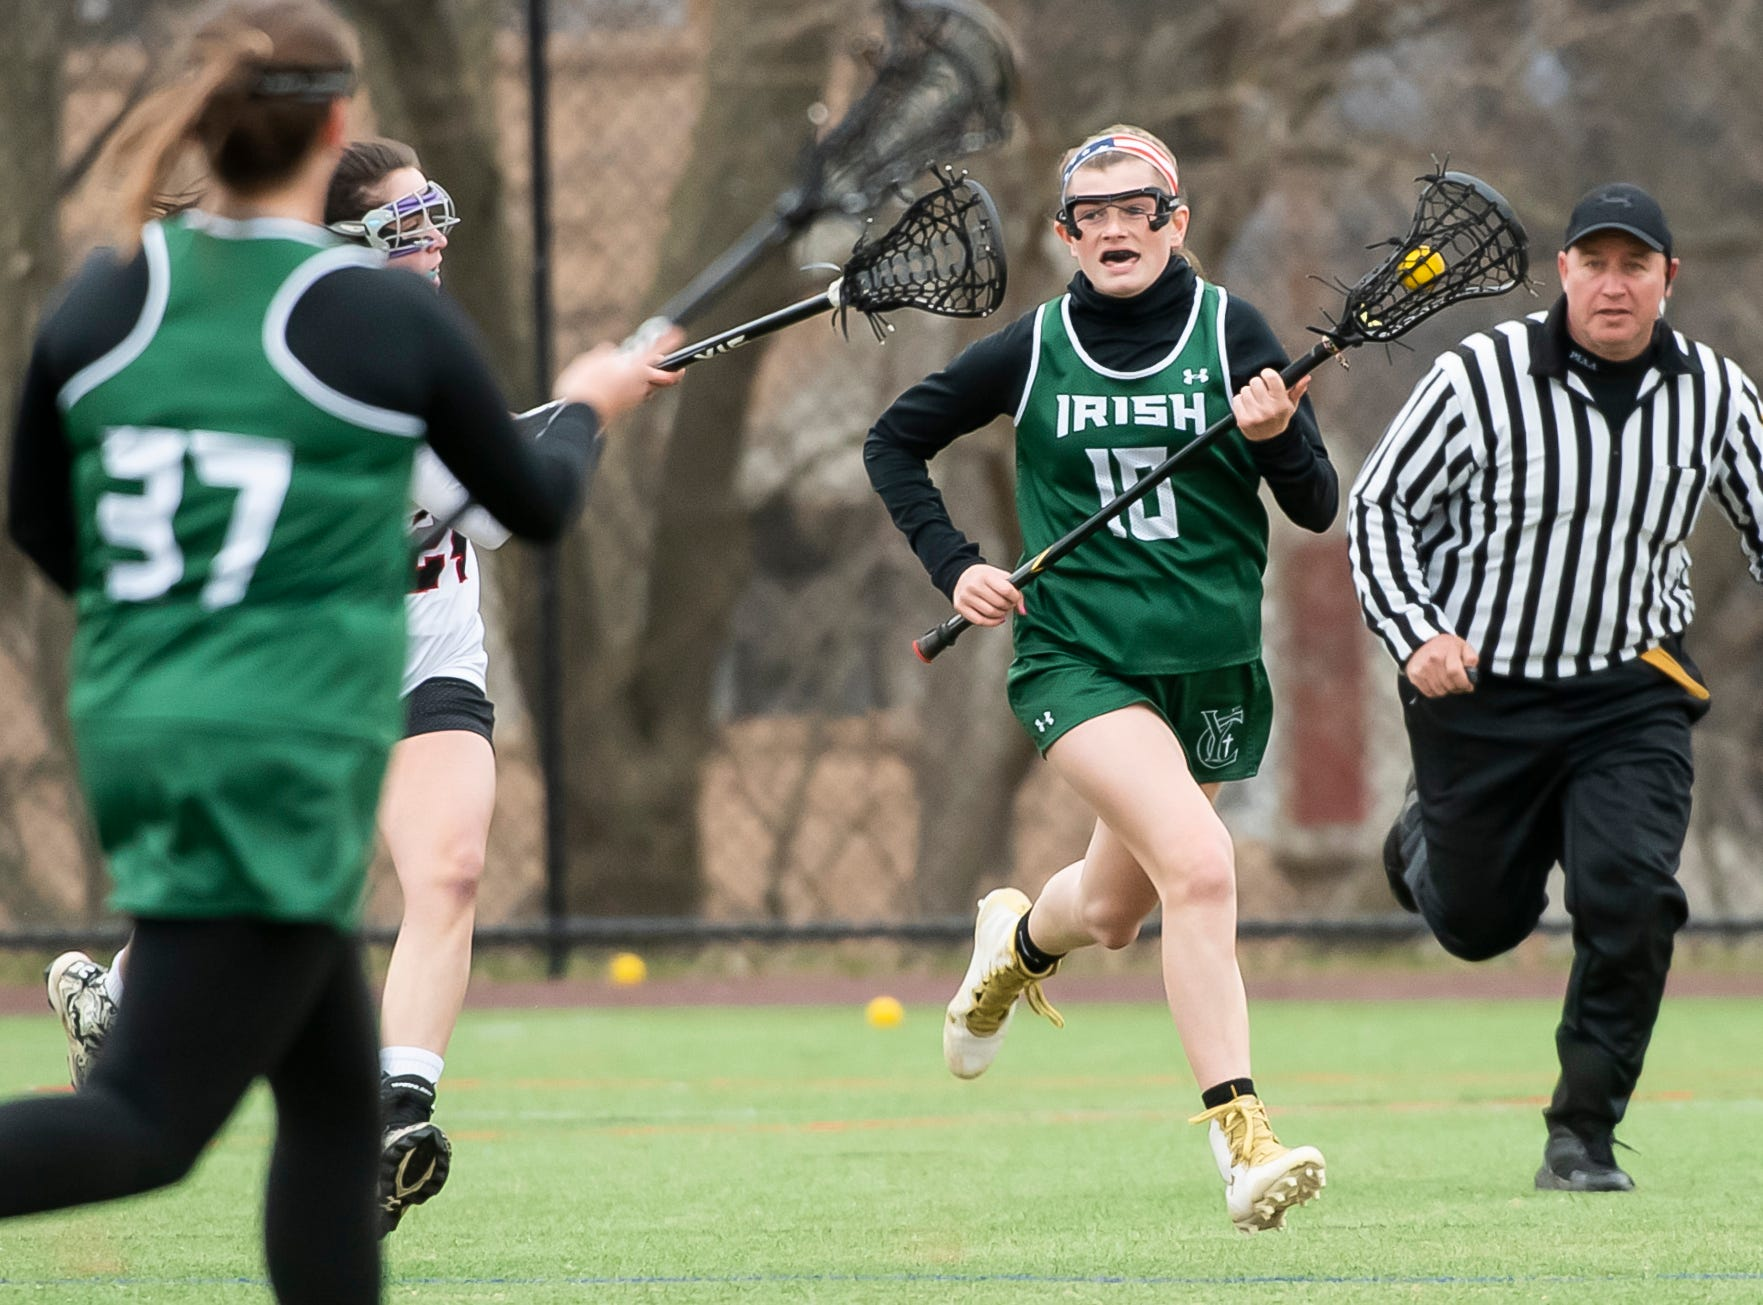 York Catholic's Sydney Mentzer (10) runs down the field during a YAIAA lacrosse game against South Western in Hanover on Tuesday, April 2, 2019. Mentzer lead all scorers with five goals on five shots and had two assists as York Catholic won 19-7 and improved to 5-0.